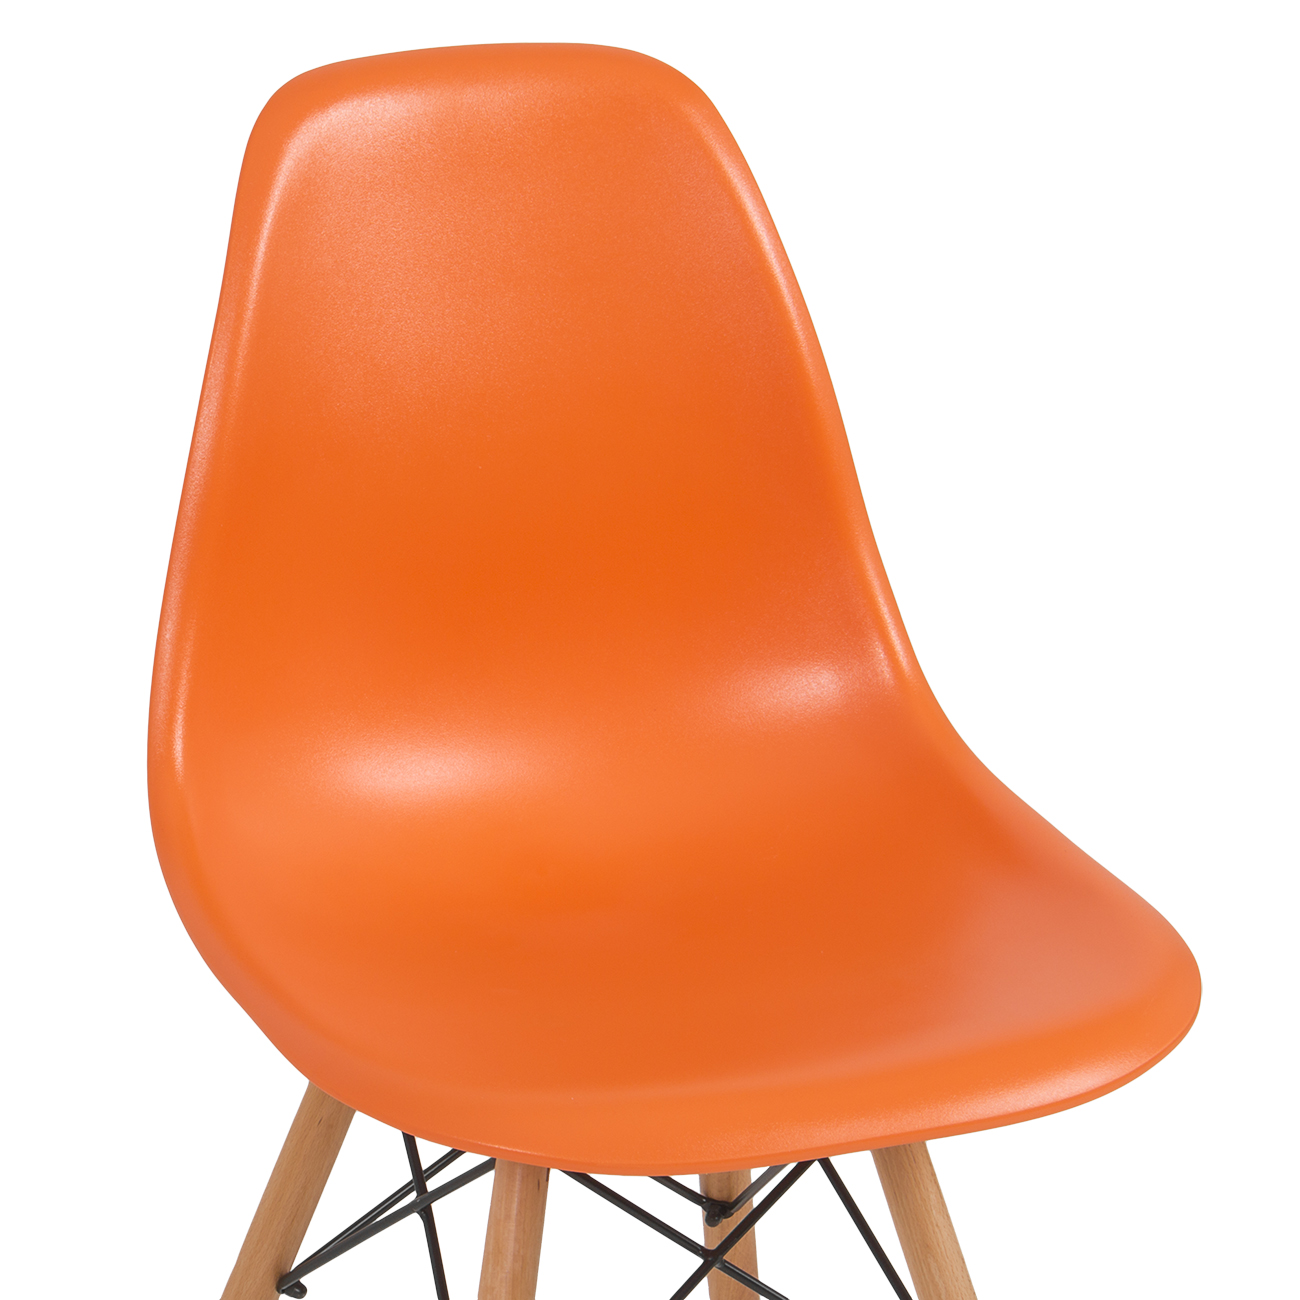 100 orange modern chair eames style dsw molded orange plast